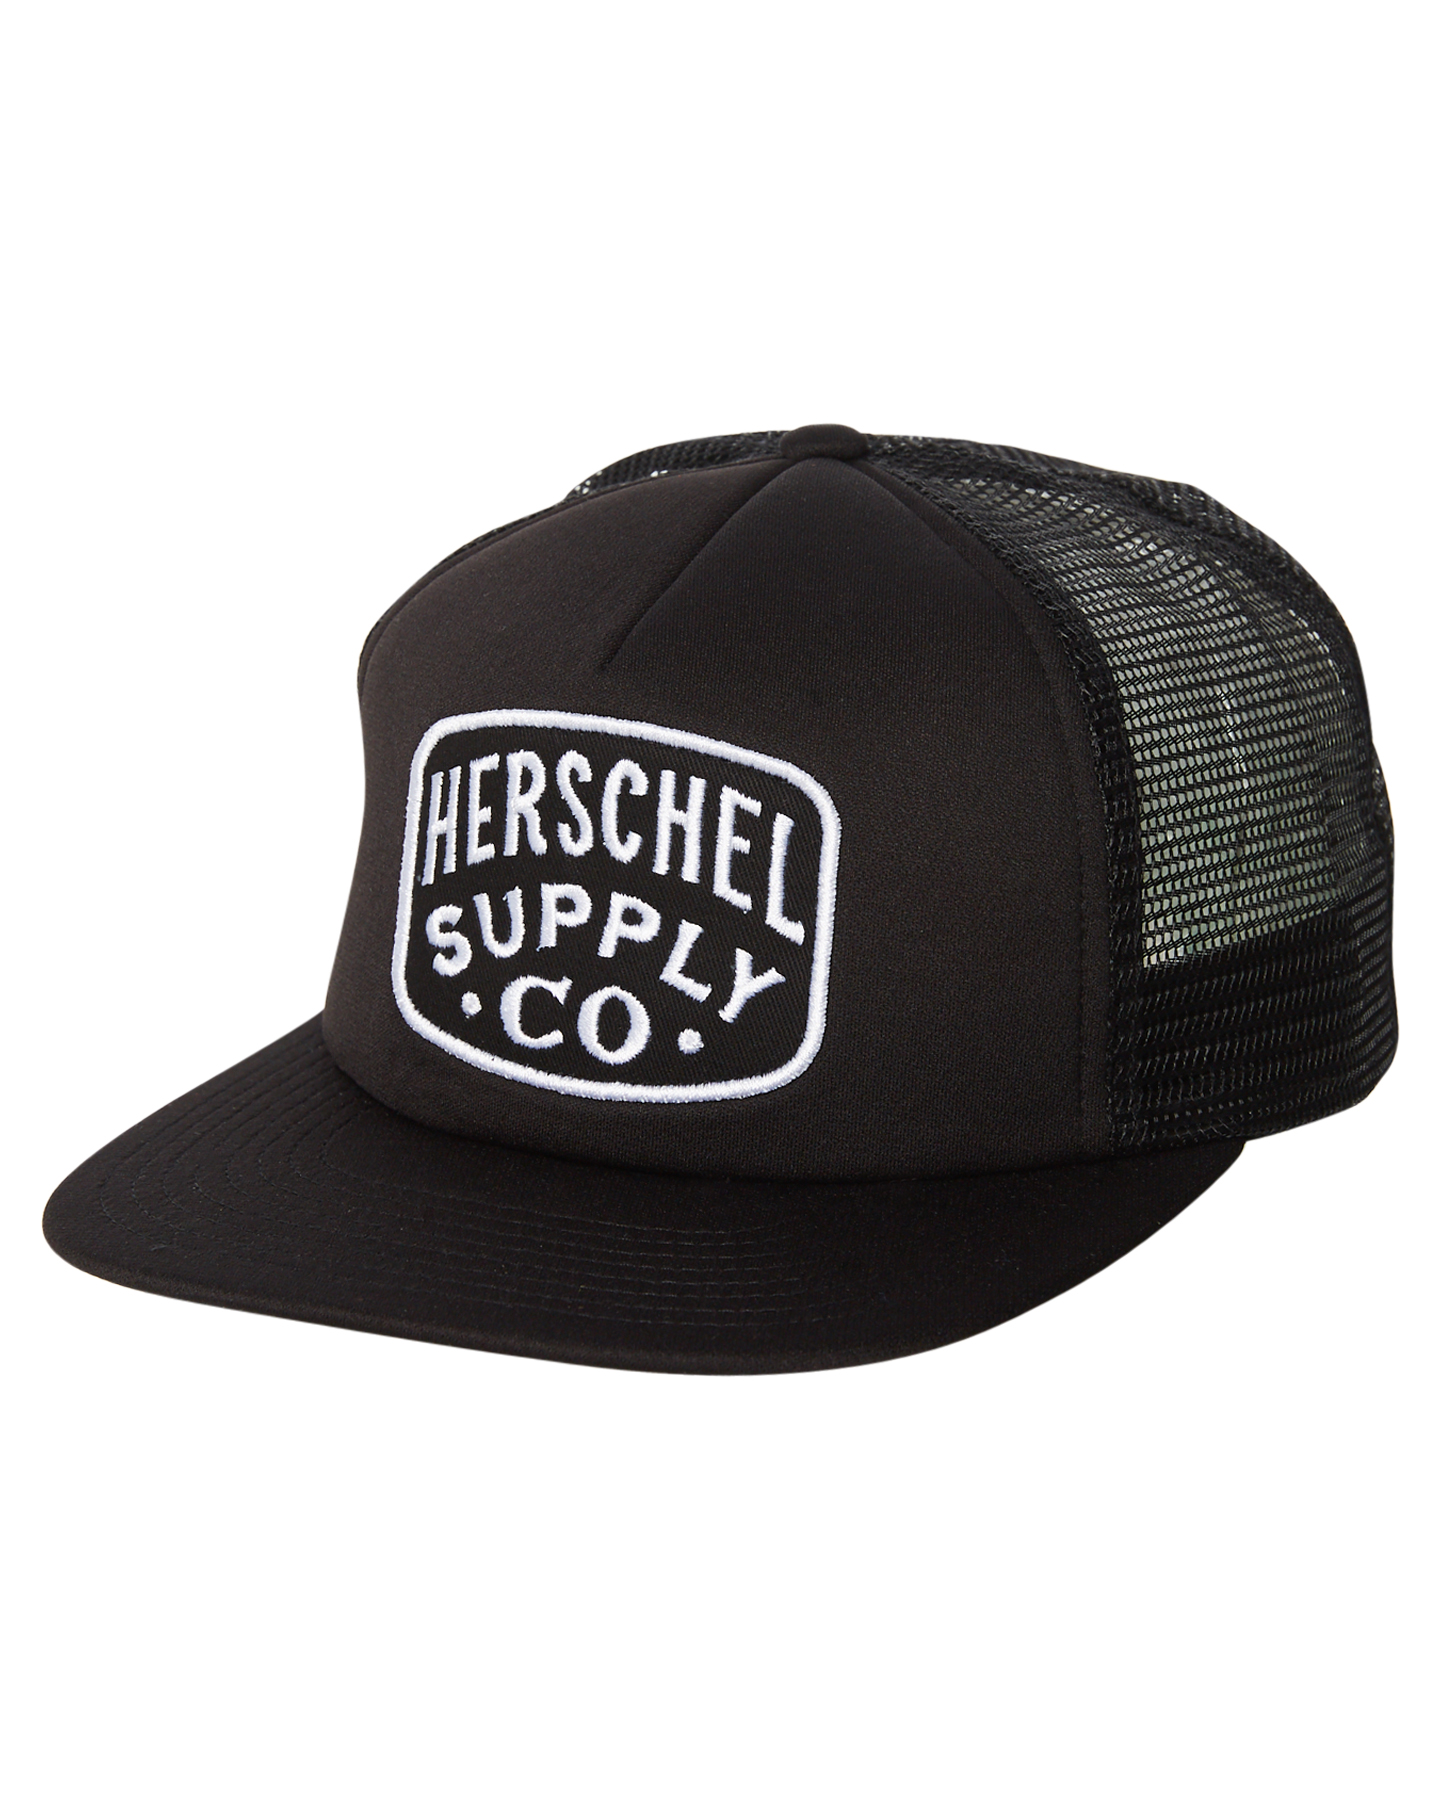 Details about New Herschel Supply Co Men s Whaler Mesh Patch Trucker Cap  Mesh Black d658c9312f14